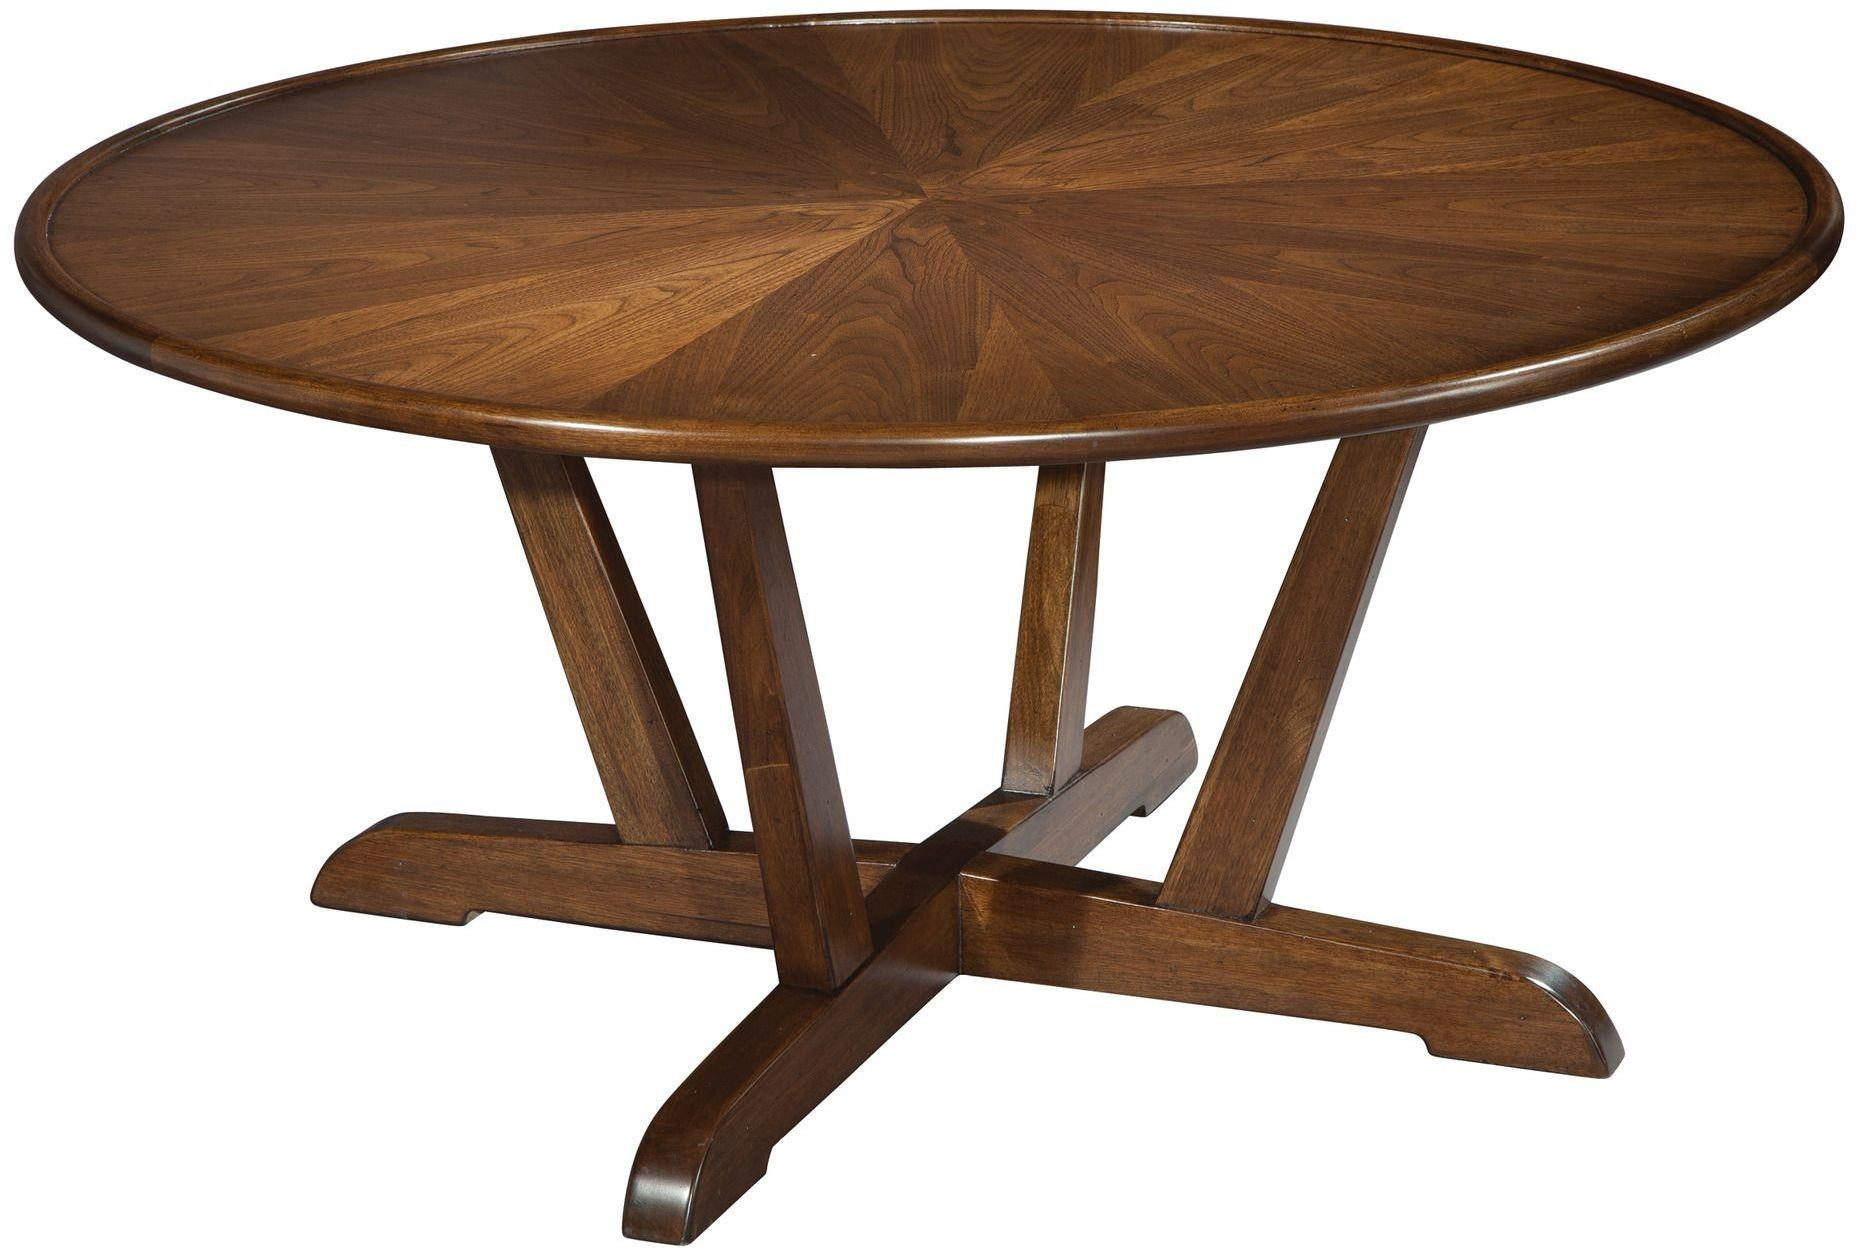 Mid Century Walnut Round Coffee Table from Hekman Furniture